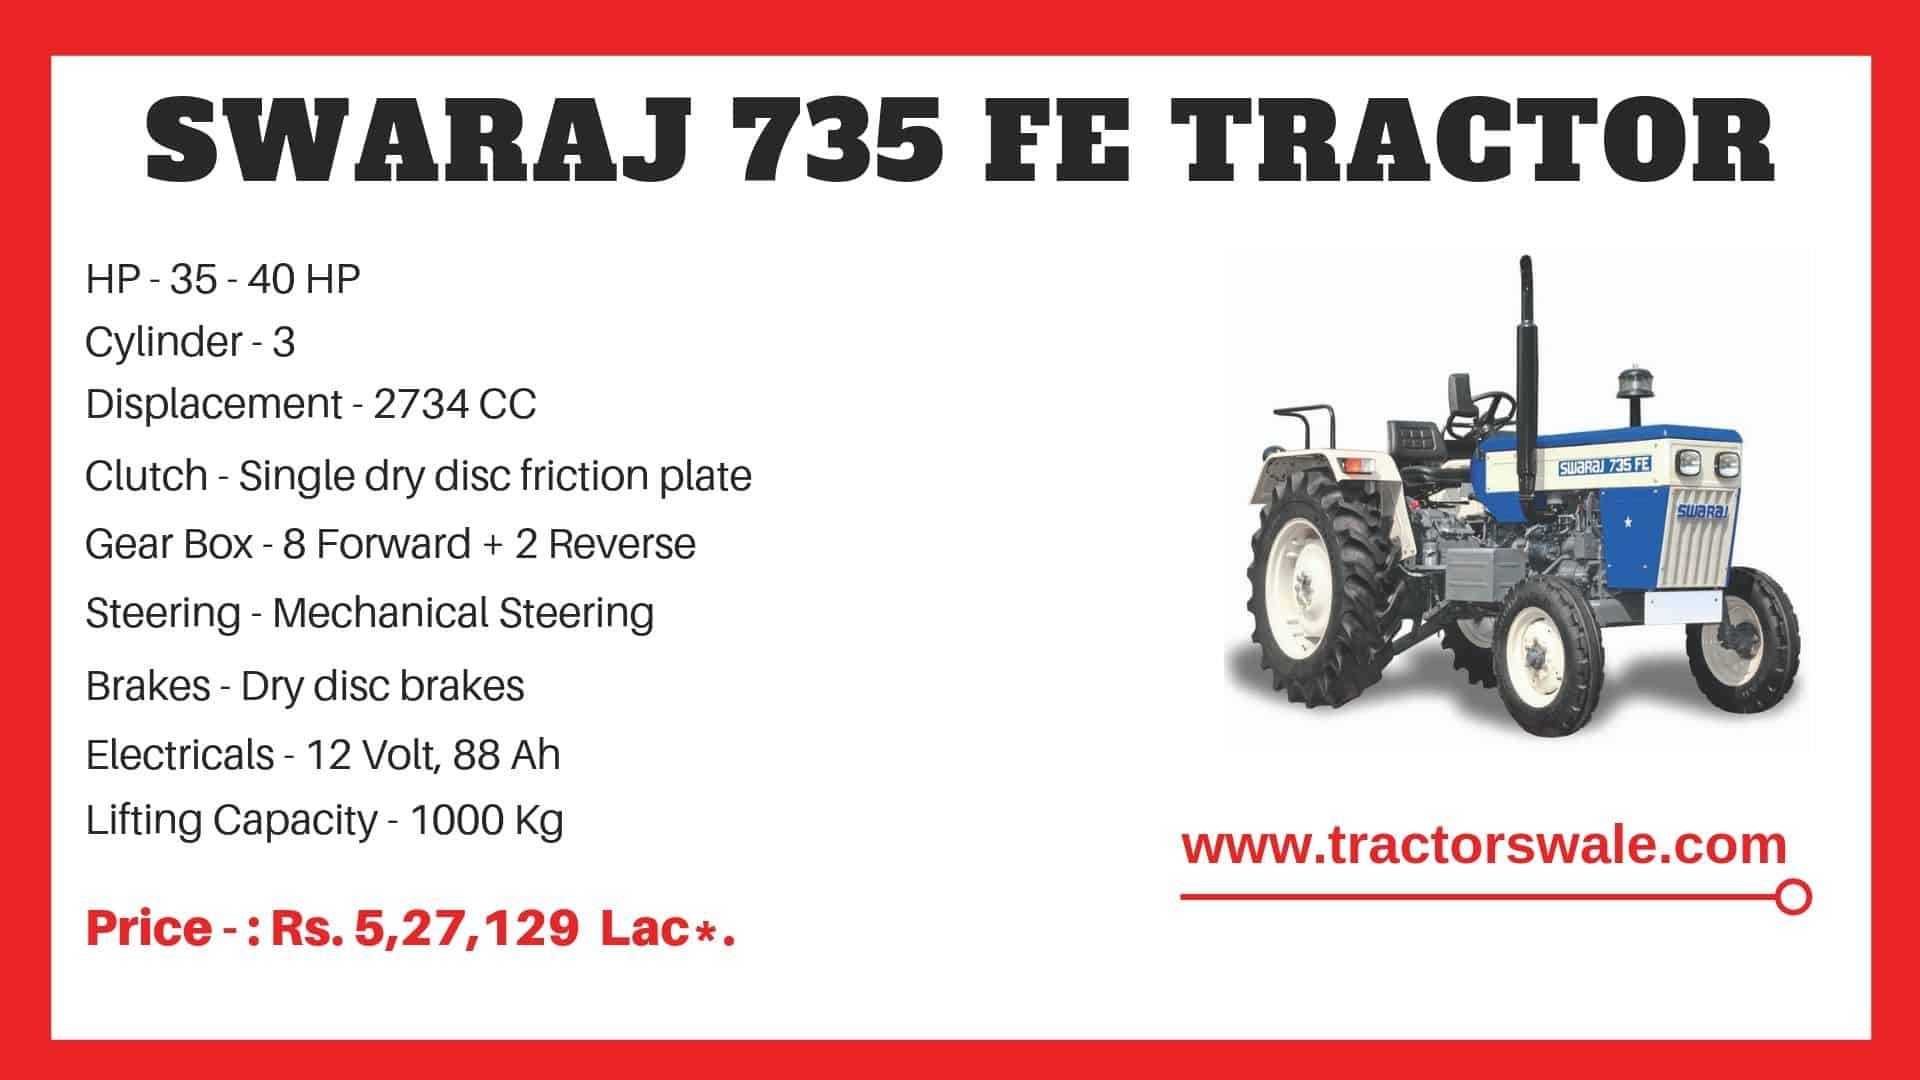 Specification of Swaraj 735 FE Tractor